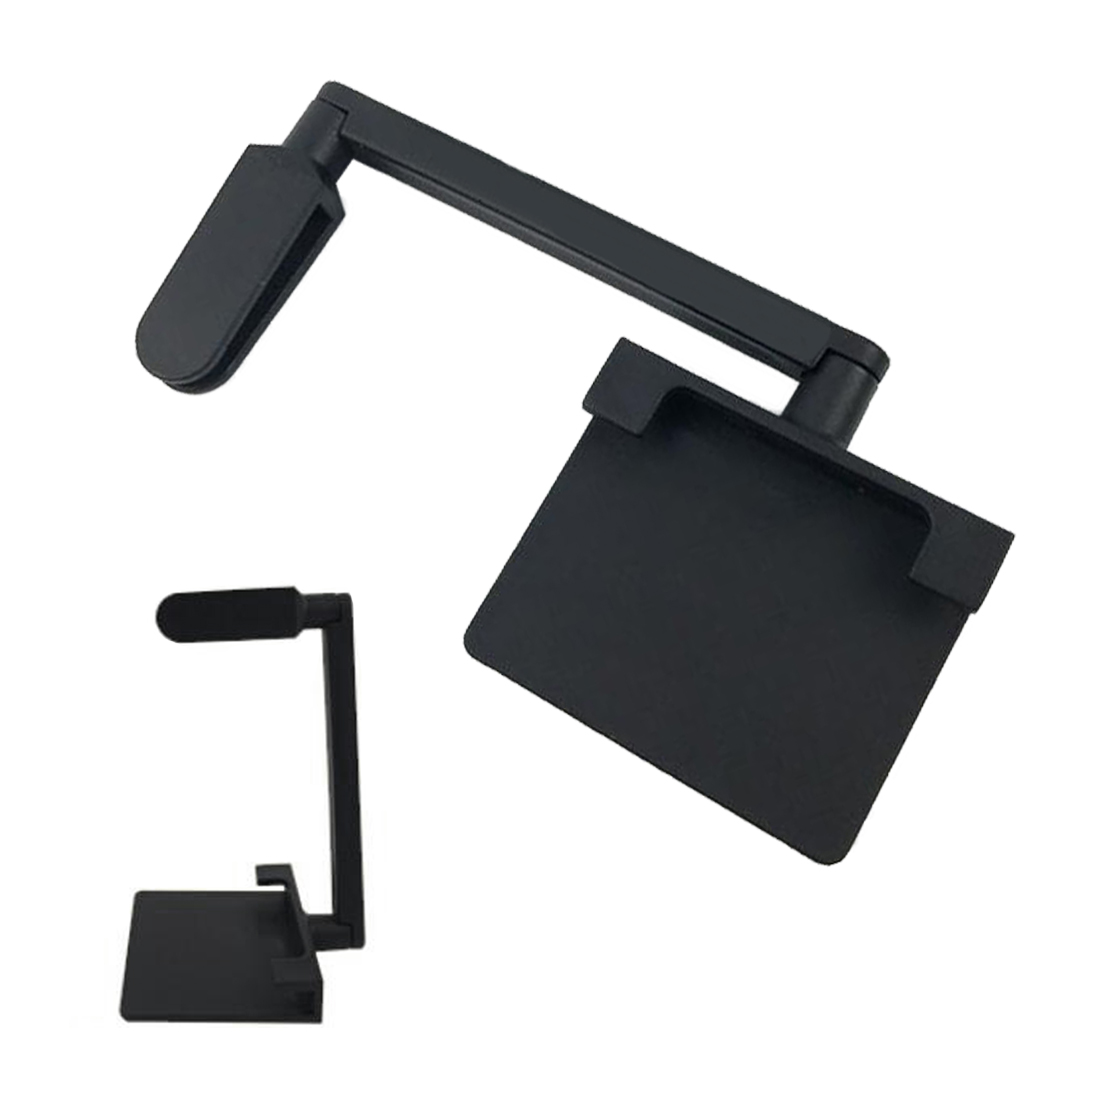 360 Rotation Universal Phone Repair Stand Holder Mobile Lcd Screen Fastening Fixture Clamp Clip For Iphone Ipad Tool